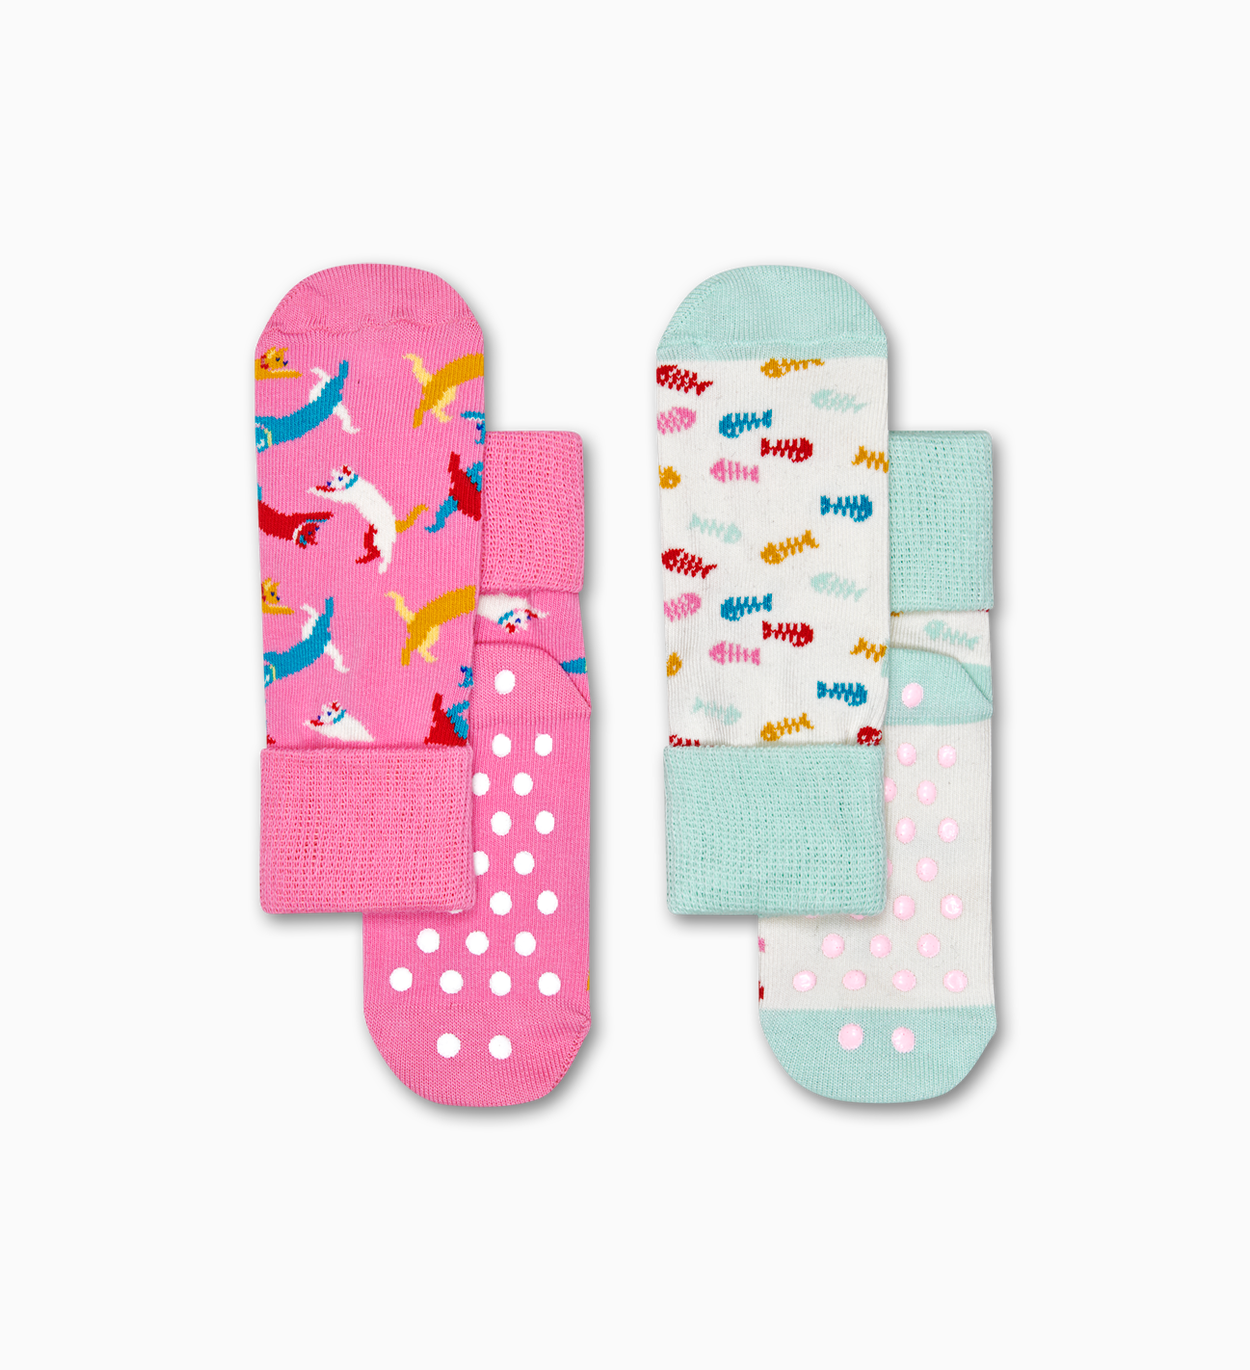 Cat Anti-Slip 양말, 2팩, 핑크 - 키즈 | Happy Socks